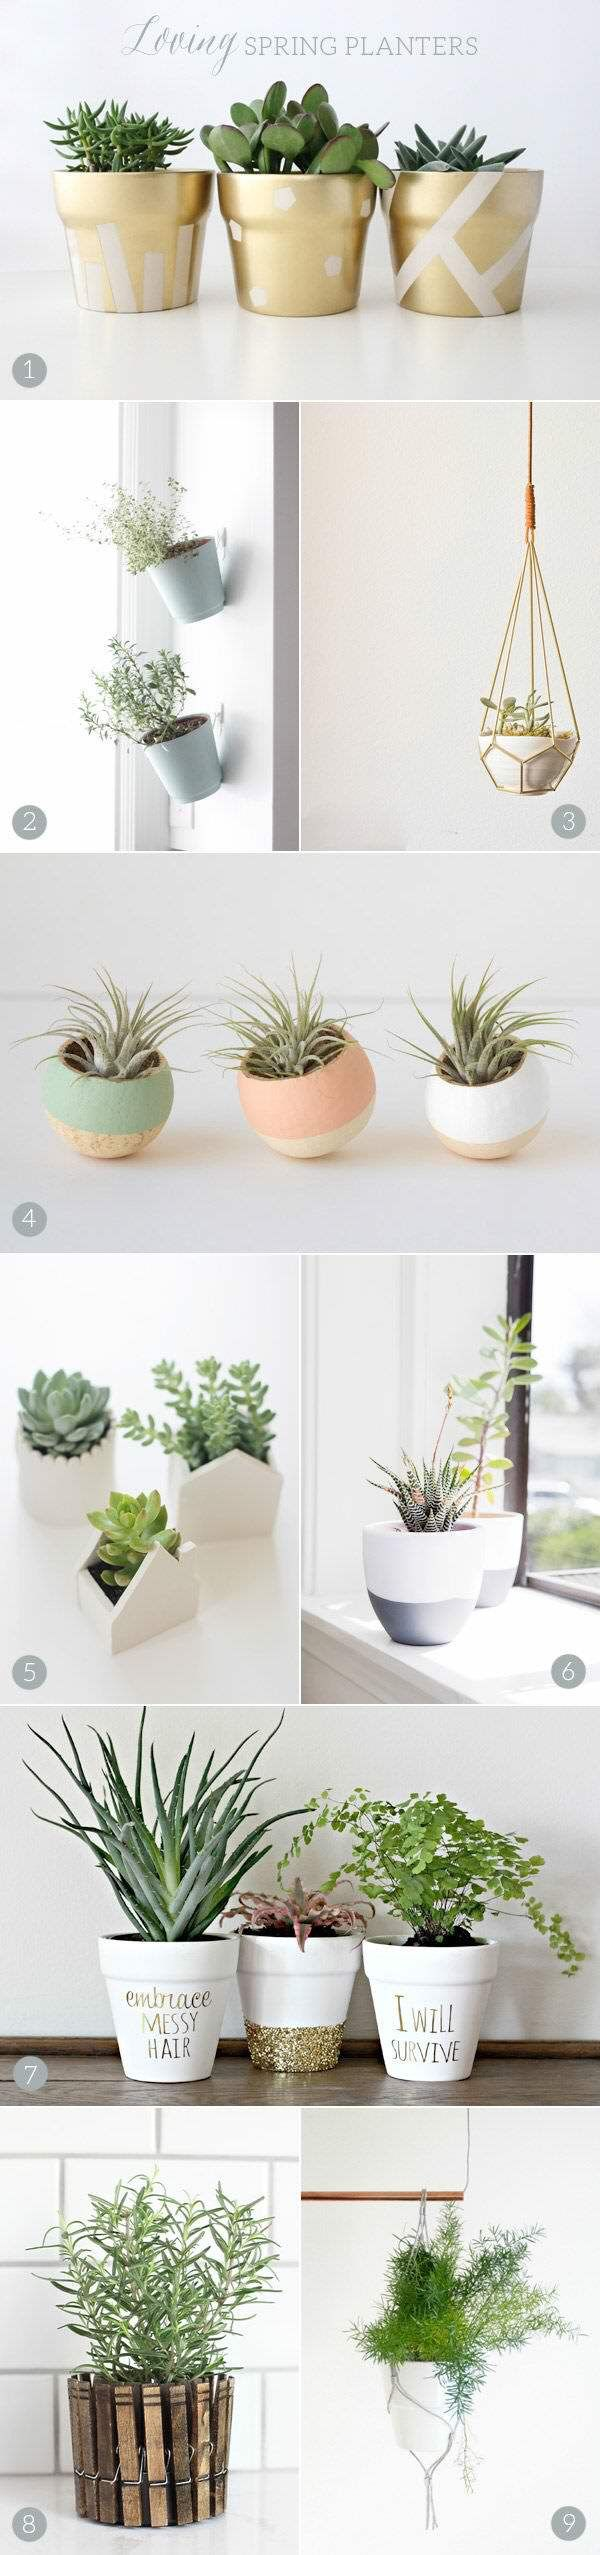 Plant holder - side of cabinet succulents or herbs in small planters